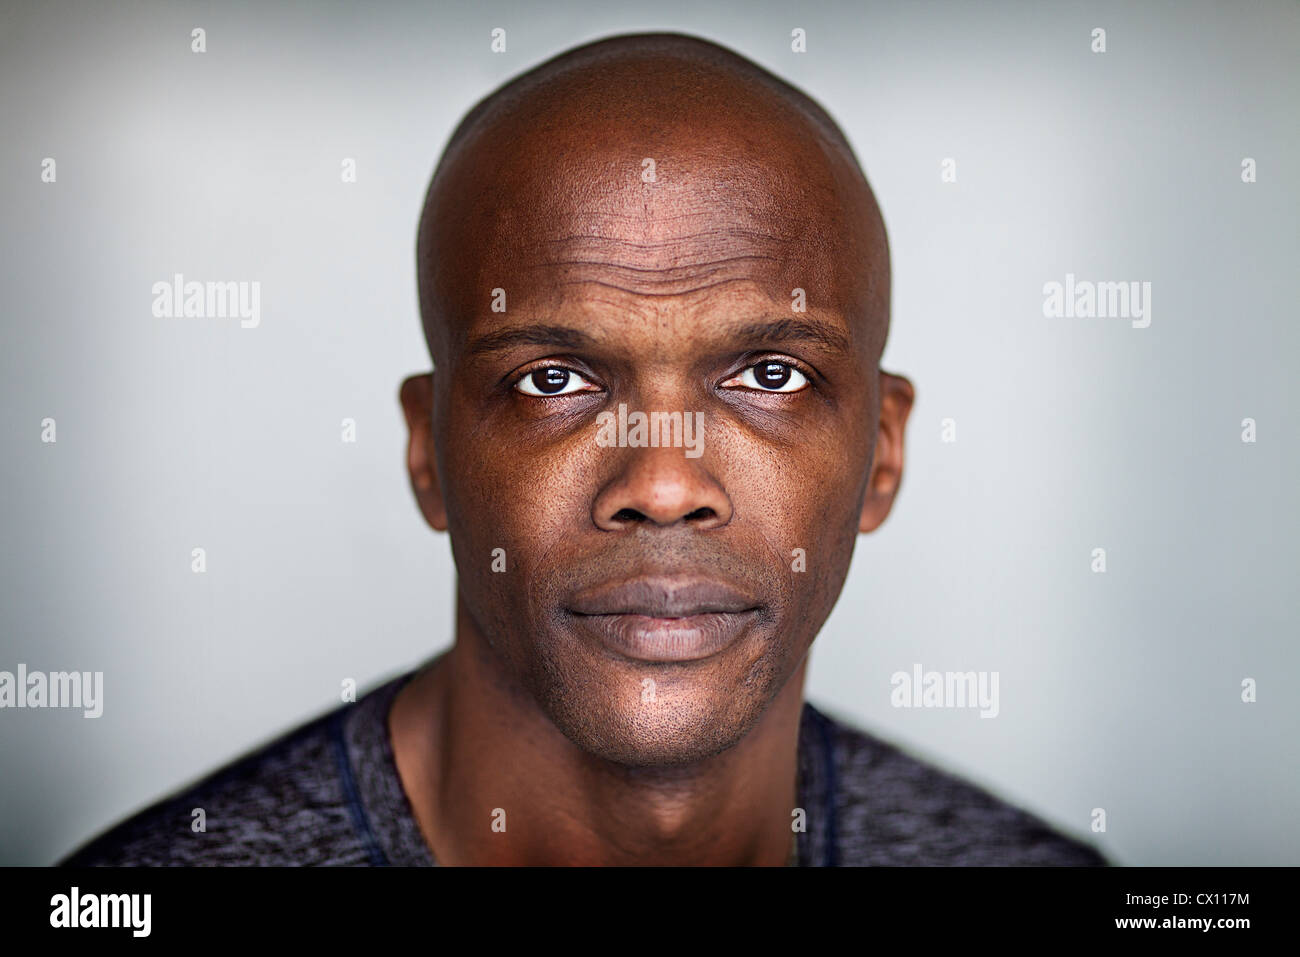 Portrait of a bald man looking at camera - Stock Image